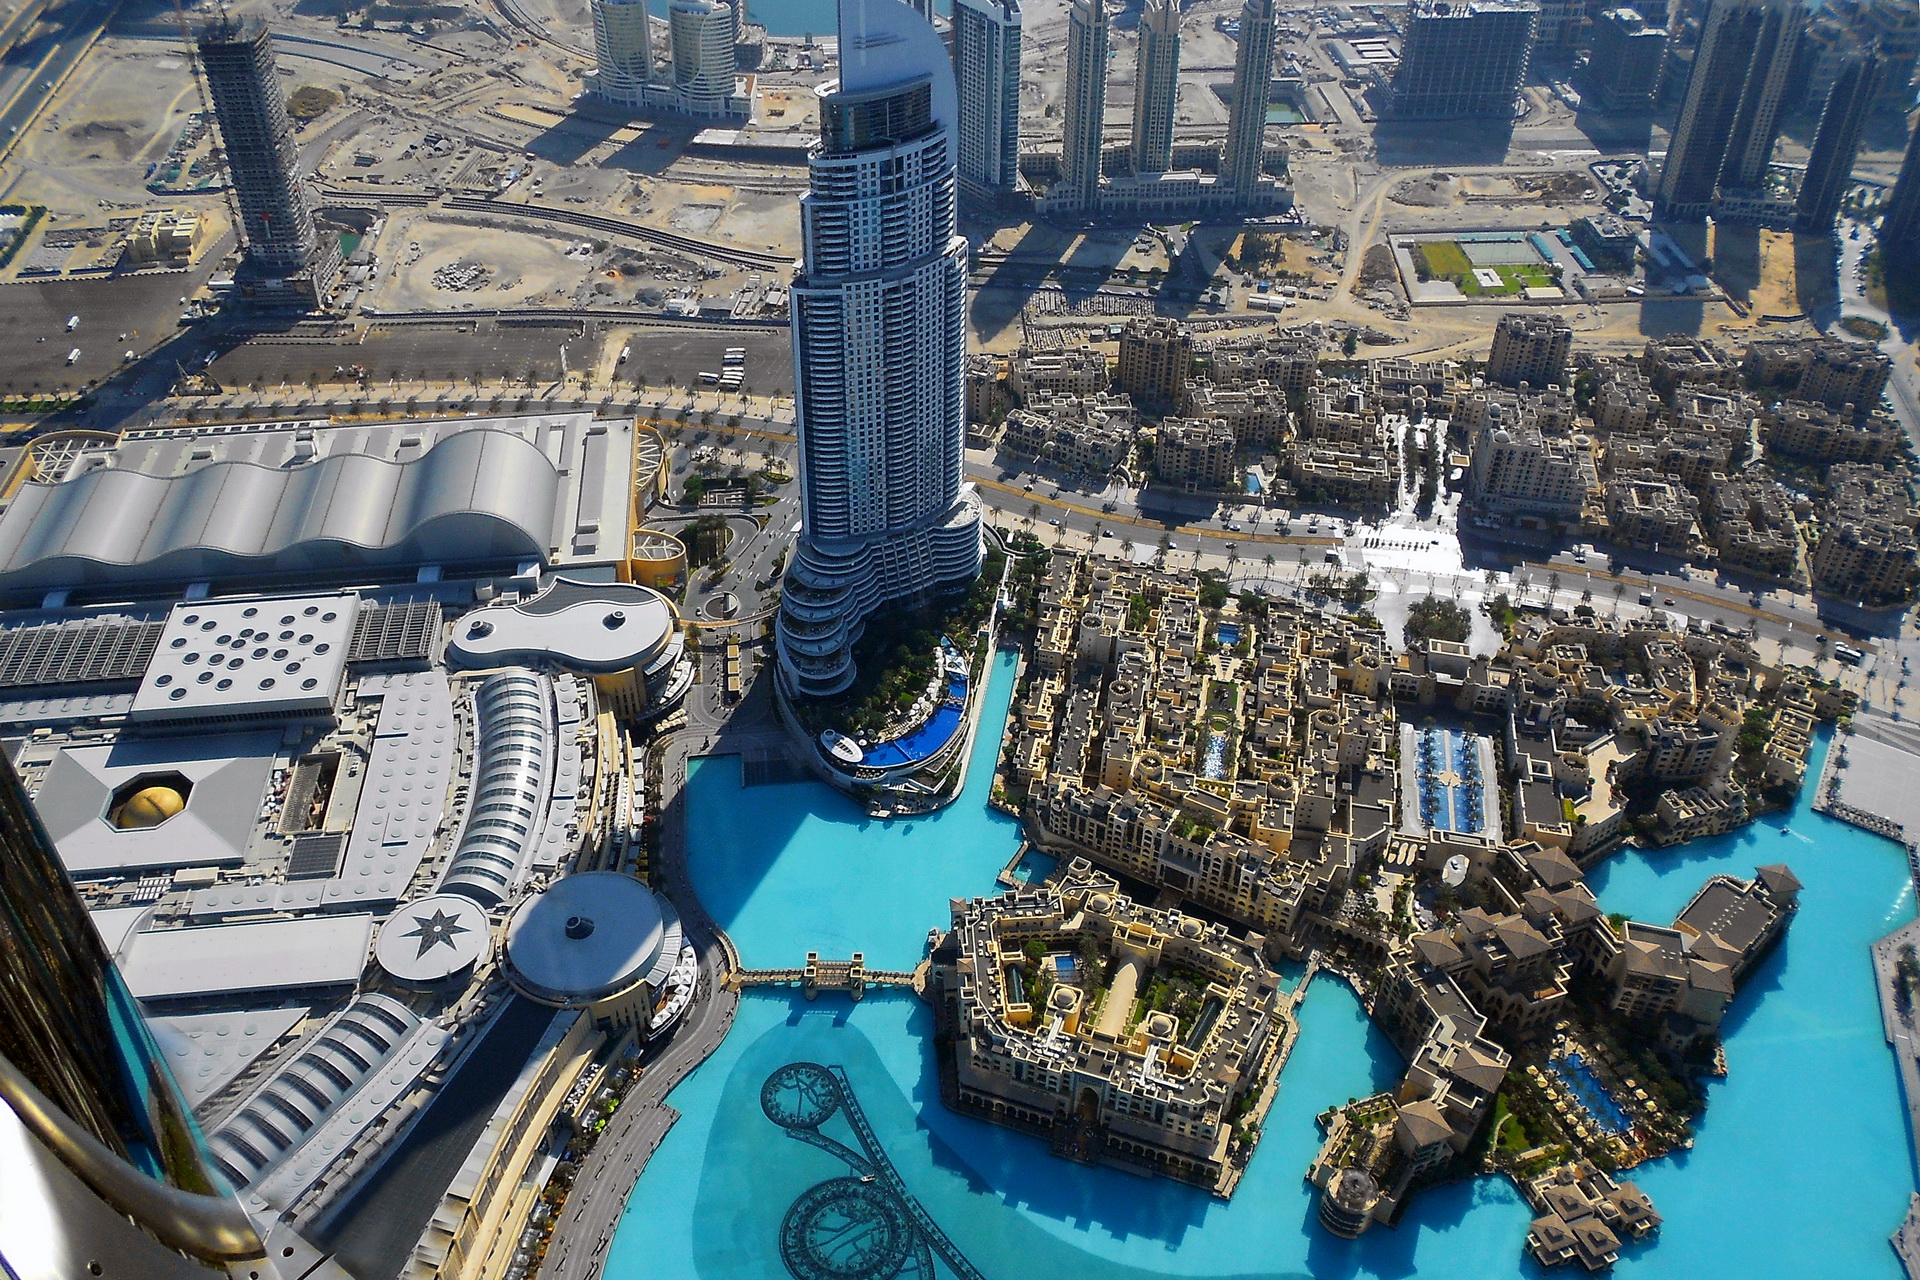 Downtown Dubai Computer Wallpapers, Desktop Backgrounds 1920x1280